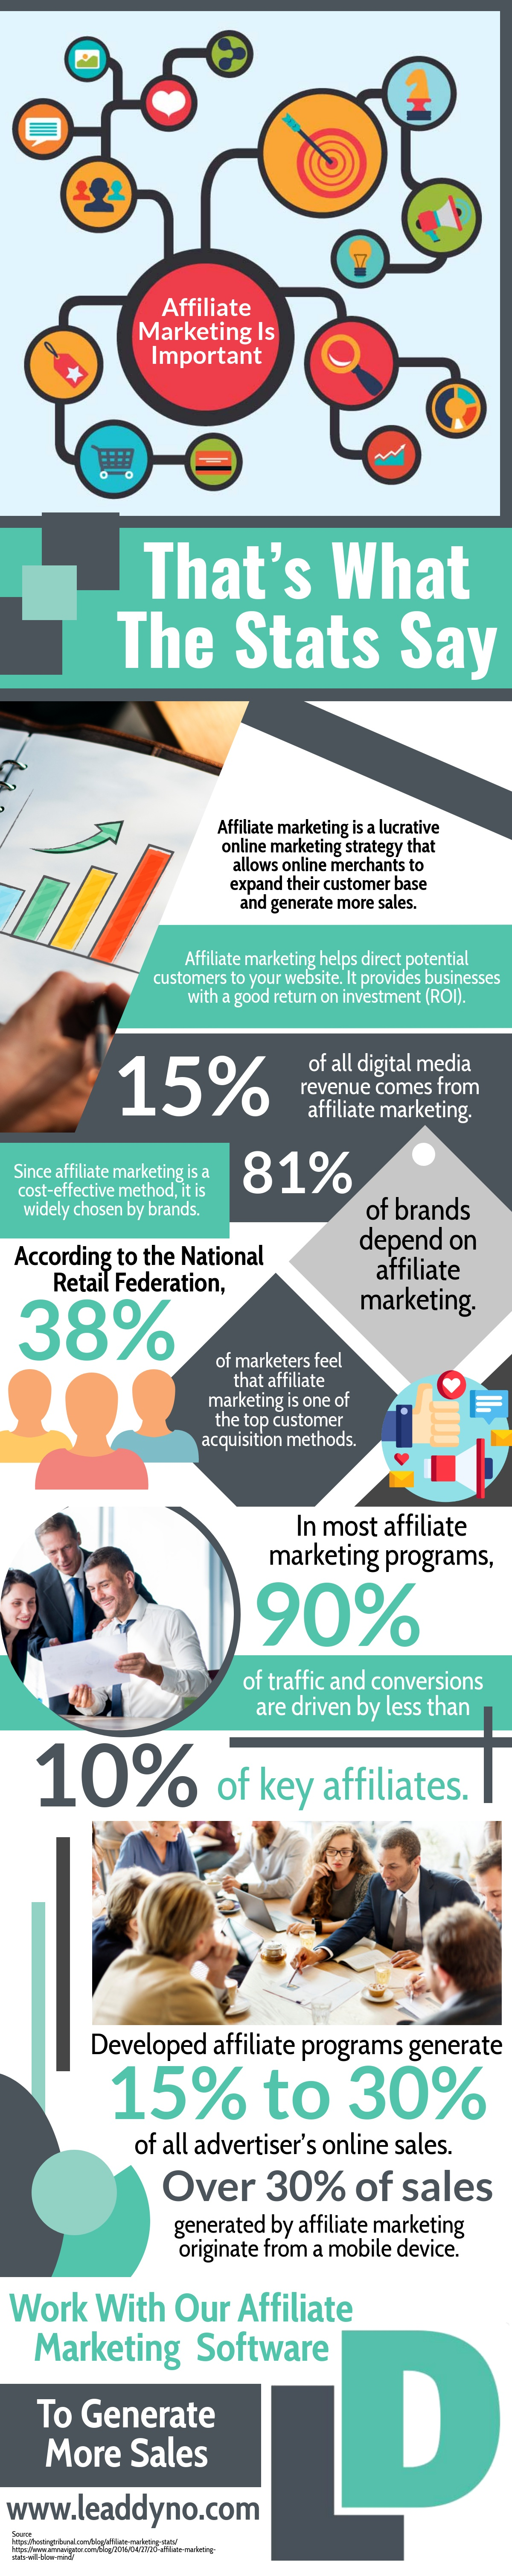 The Importance of Affiliate Marketing [Infographic]